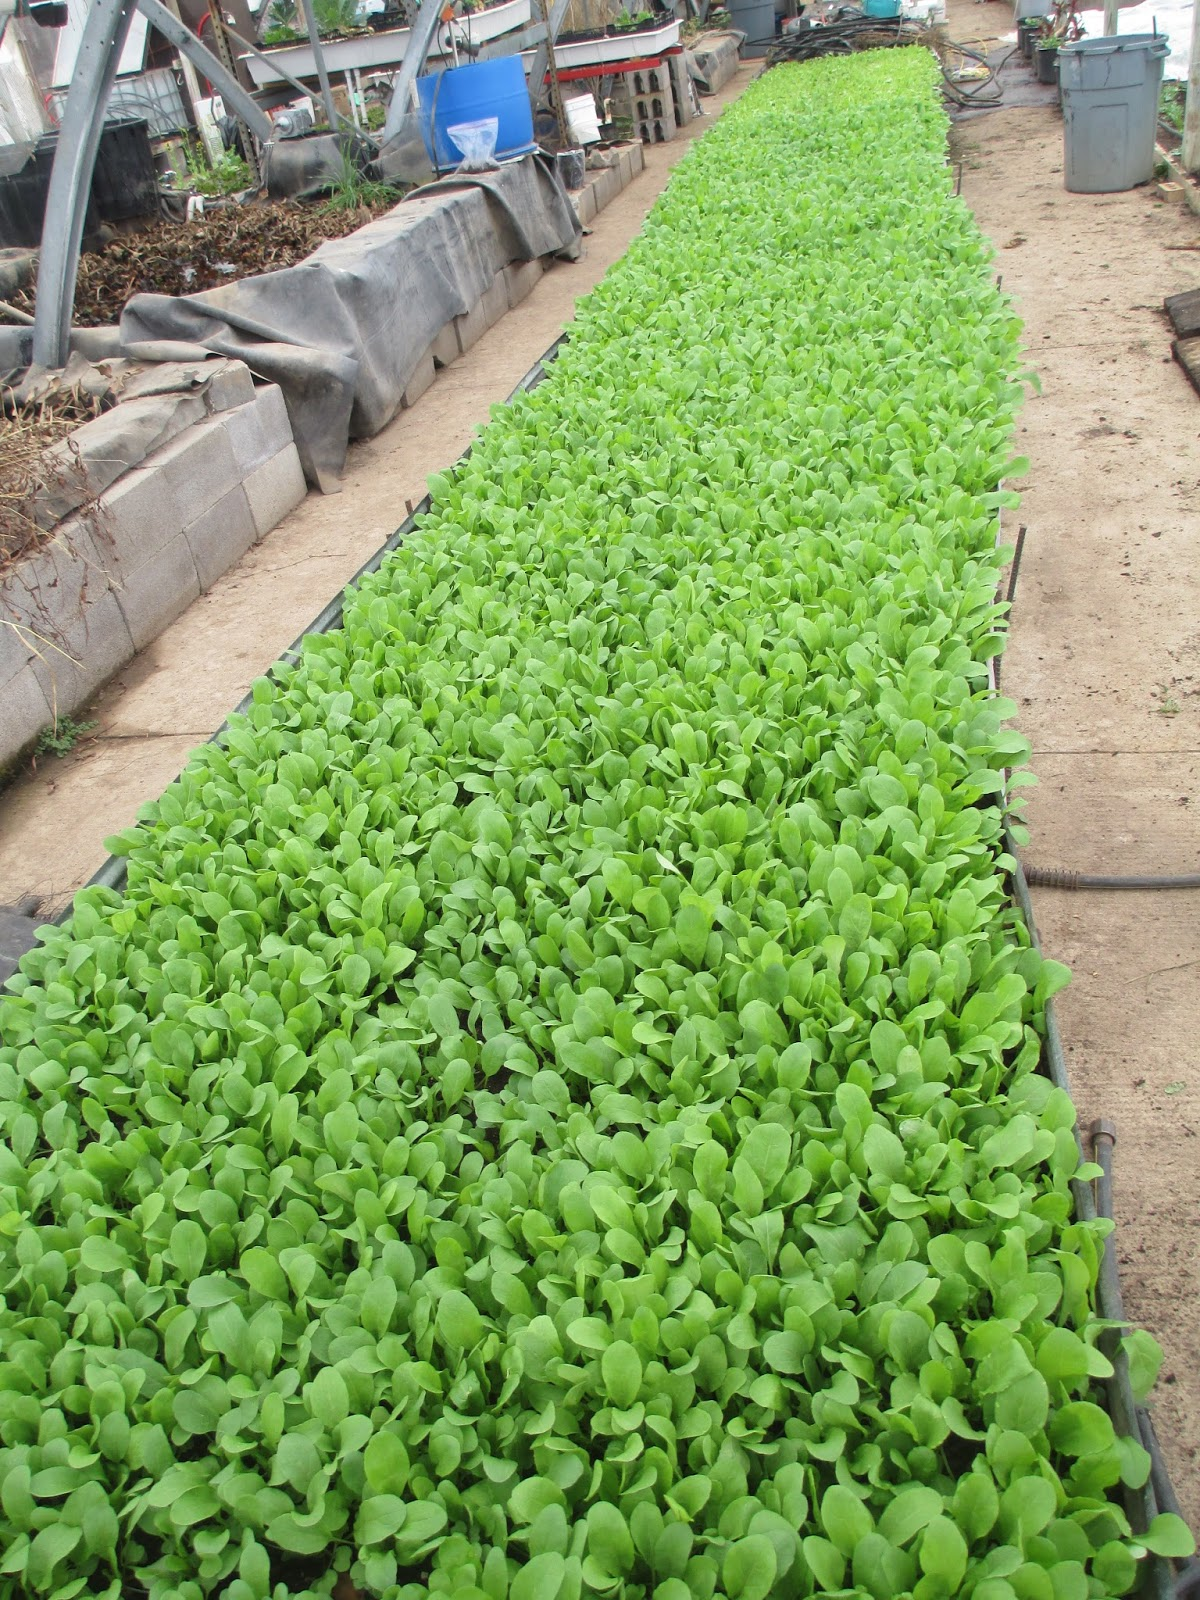 How To Grow It And How To Use It For: How To Grow Arugula, Tips And Guide For Growing Arugula